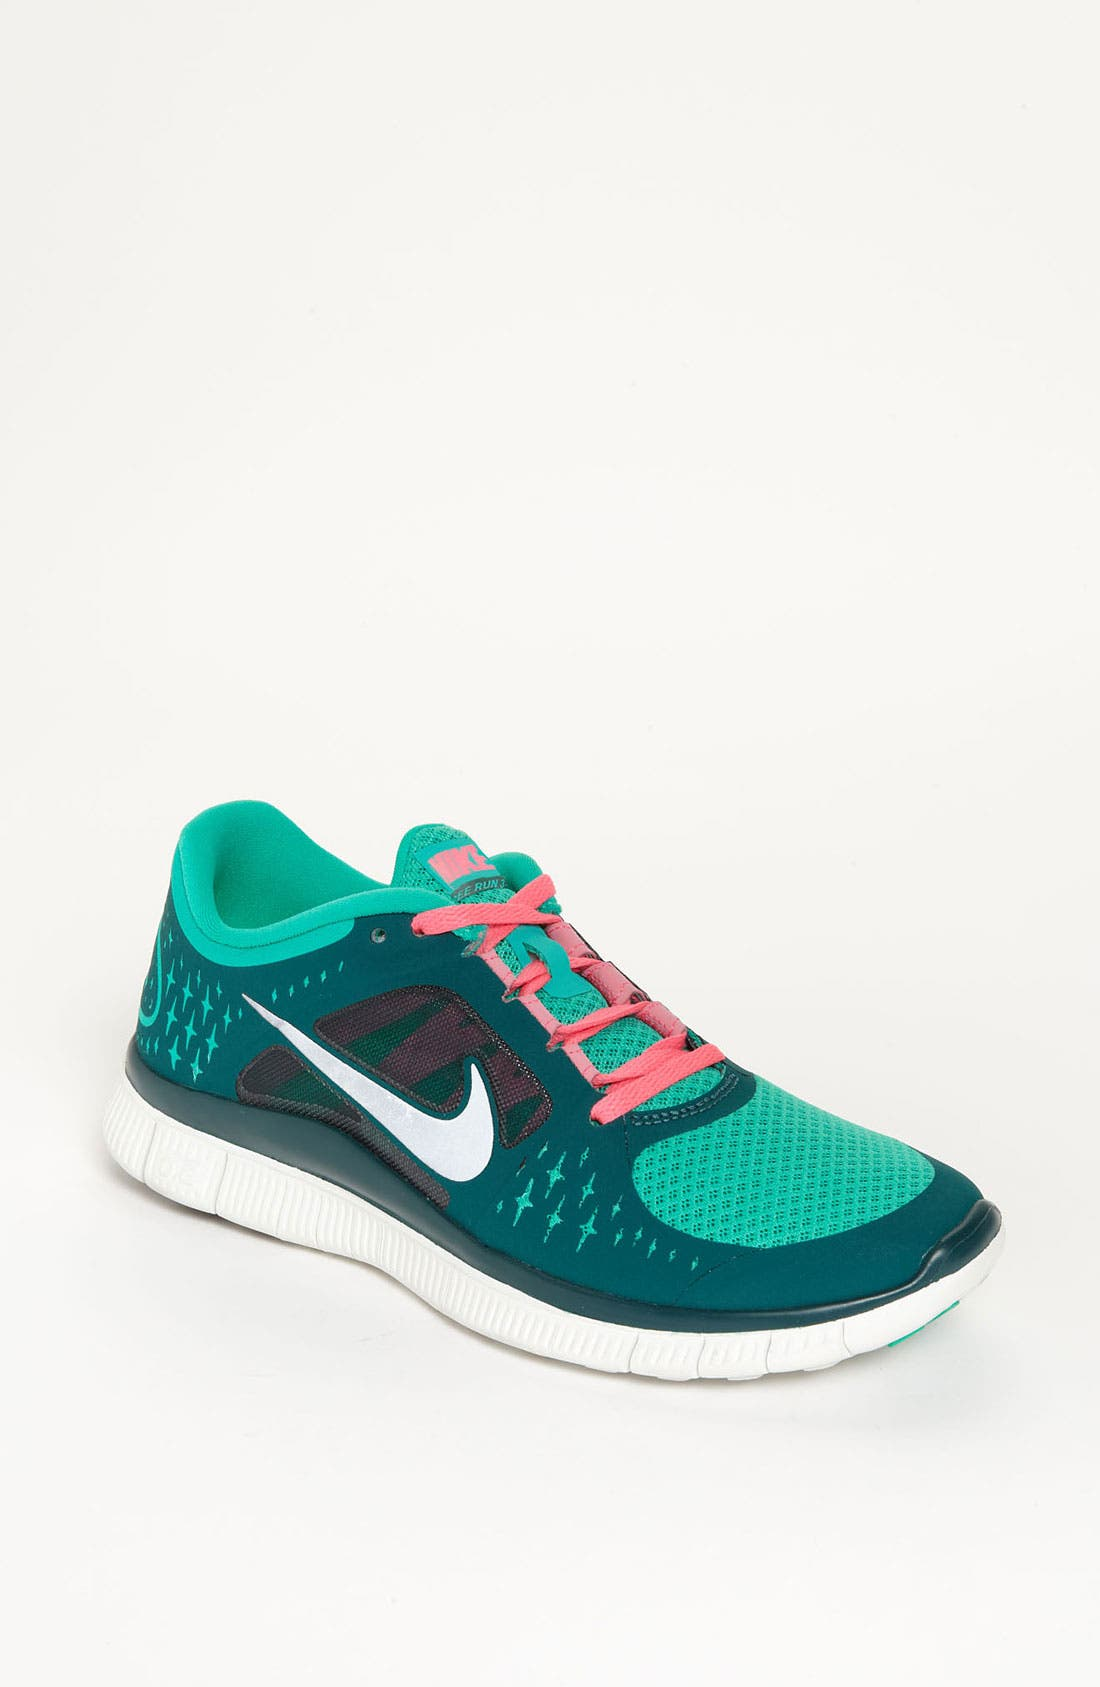 Main Image - Nike 'Free Run+ 3' Running Shoe (Women)